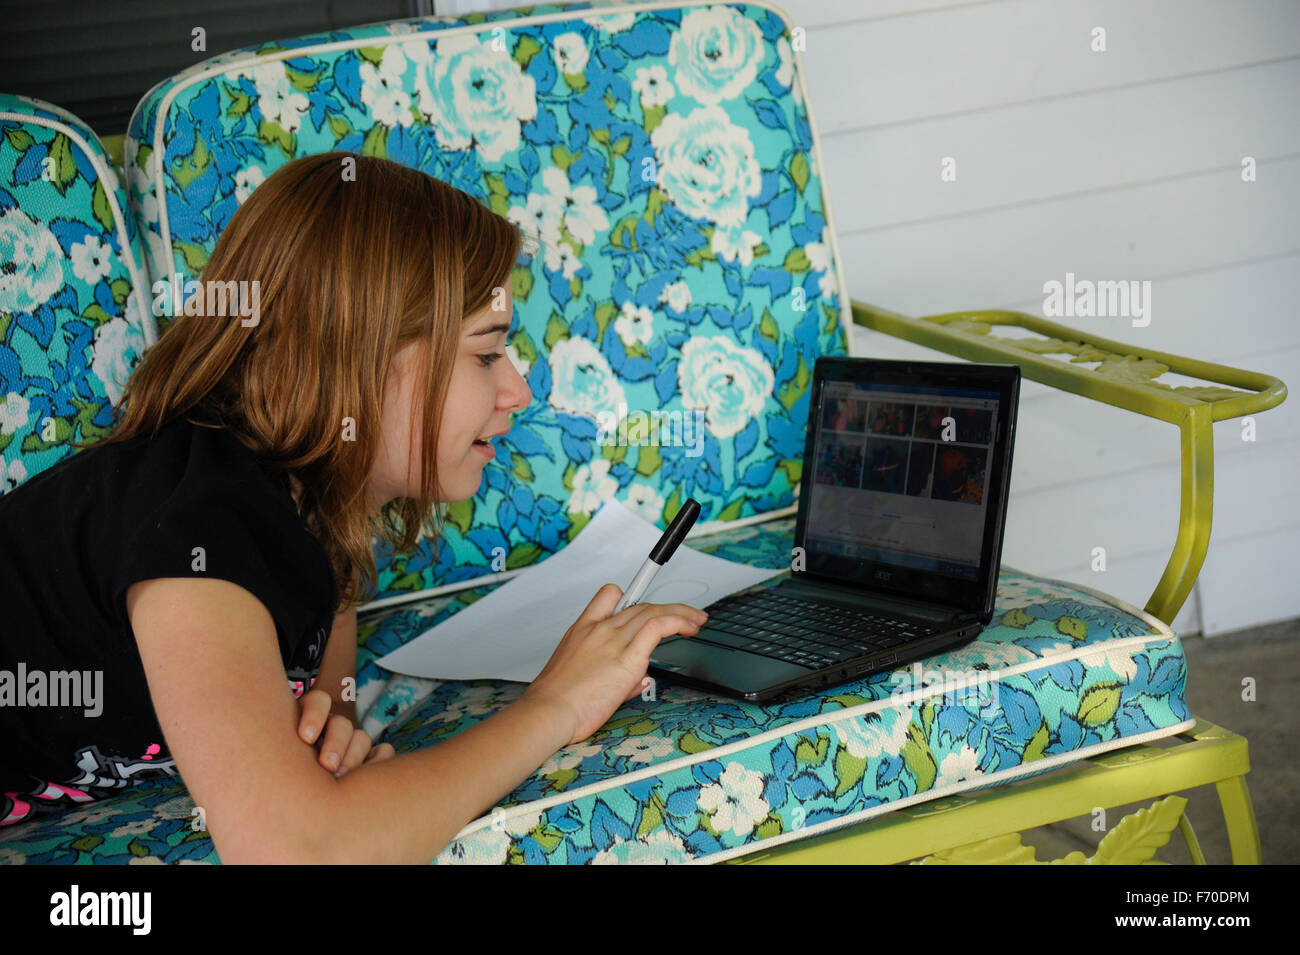 Pre-teen girl using the internet on laptop to design a drawing - Stock Image